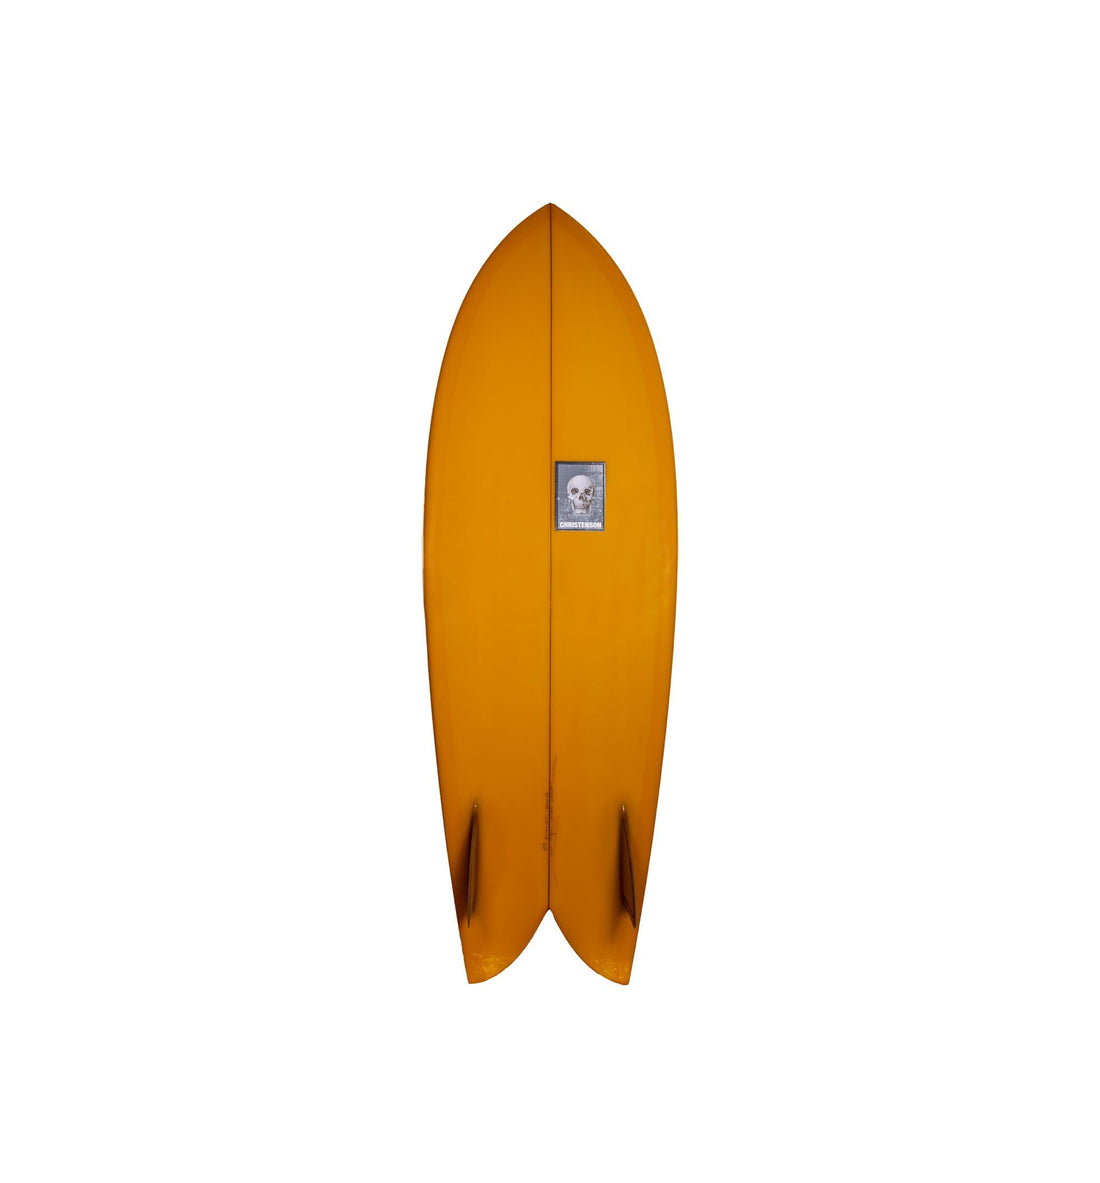 "Christenson Surfboards Fish - Yellow Tint - 5'8"" - Surf - Iron and Resin"